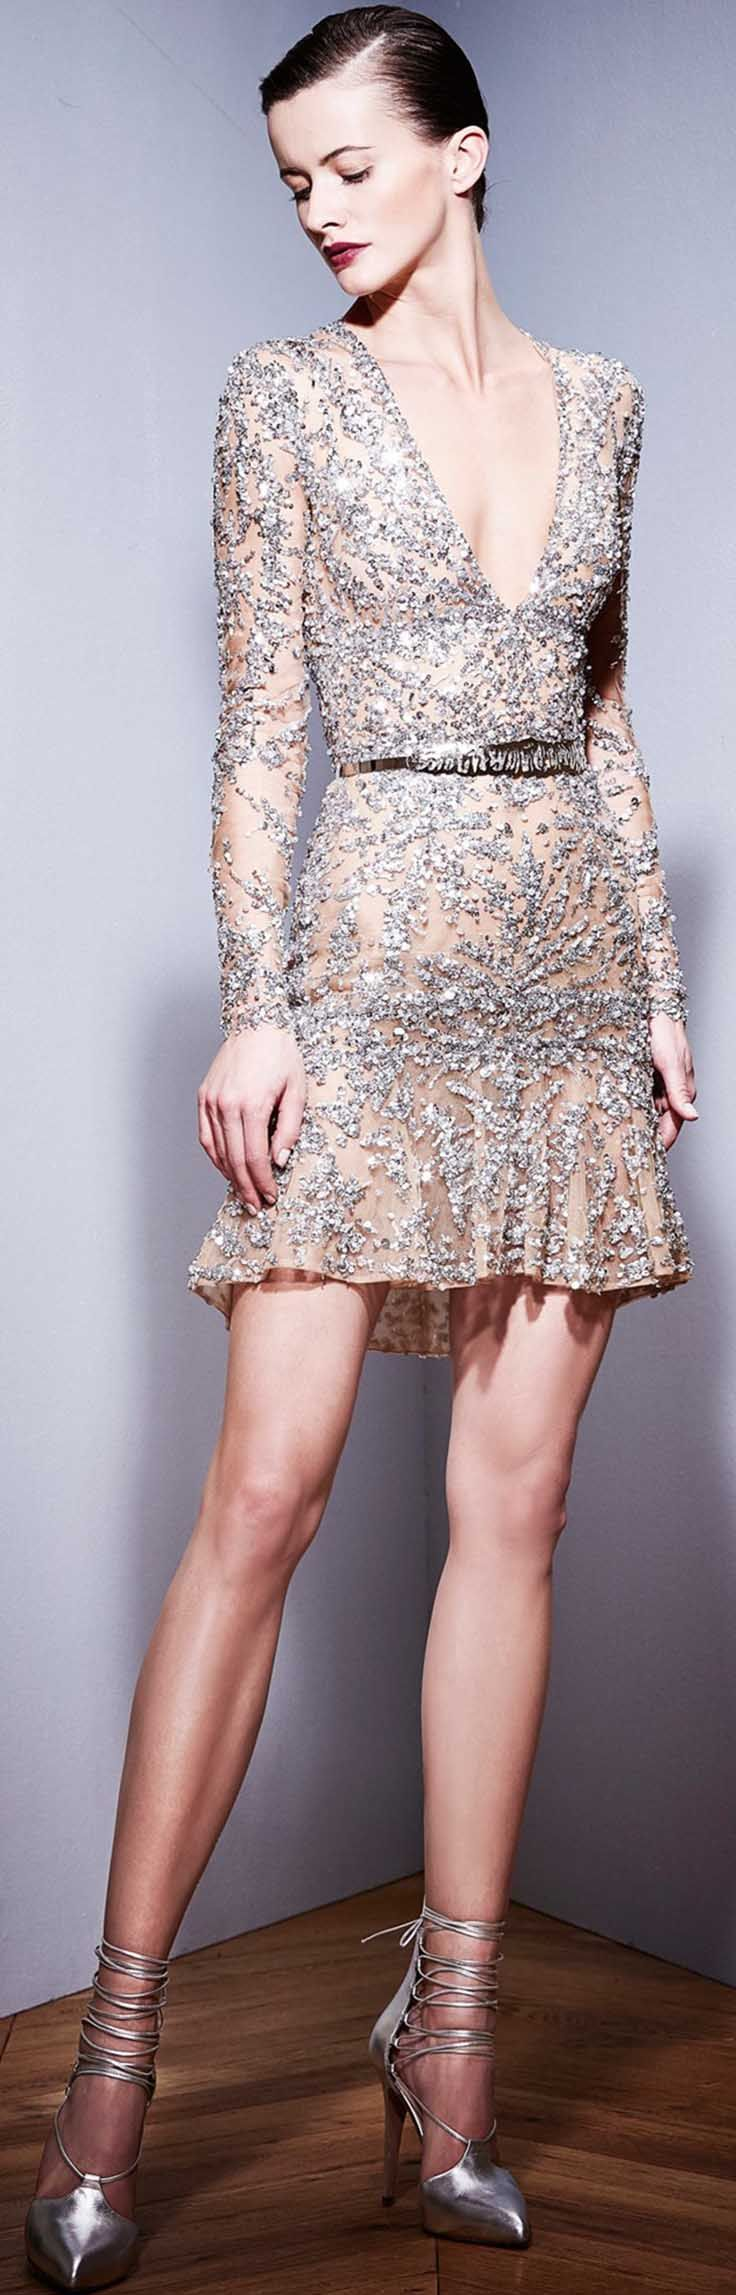 Zuhair Murad Latest Fall Winter 2015